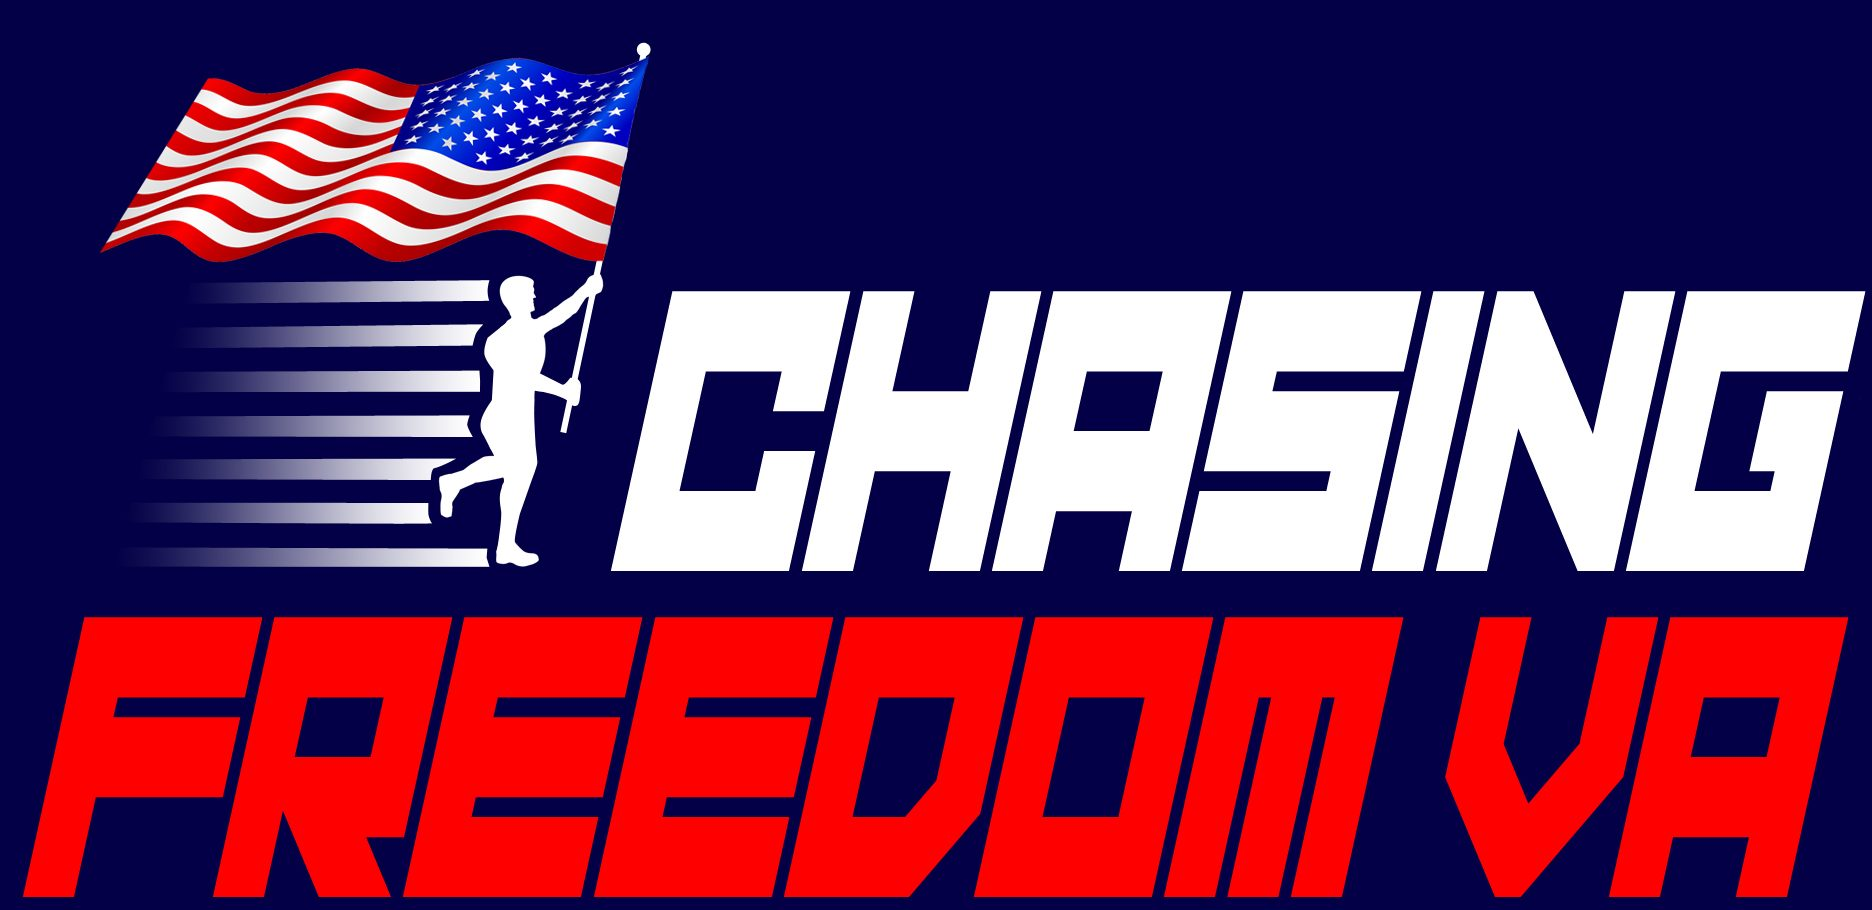 Chasing Freedom - Virginia